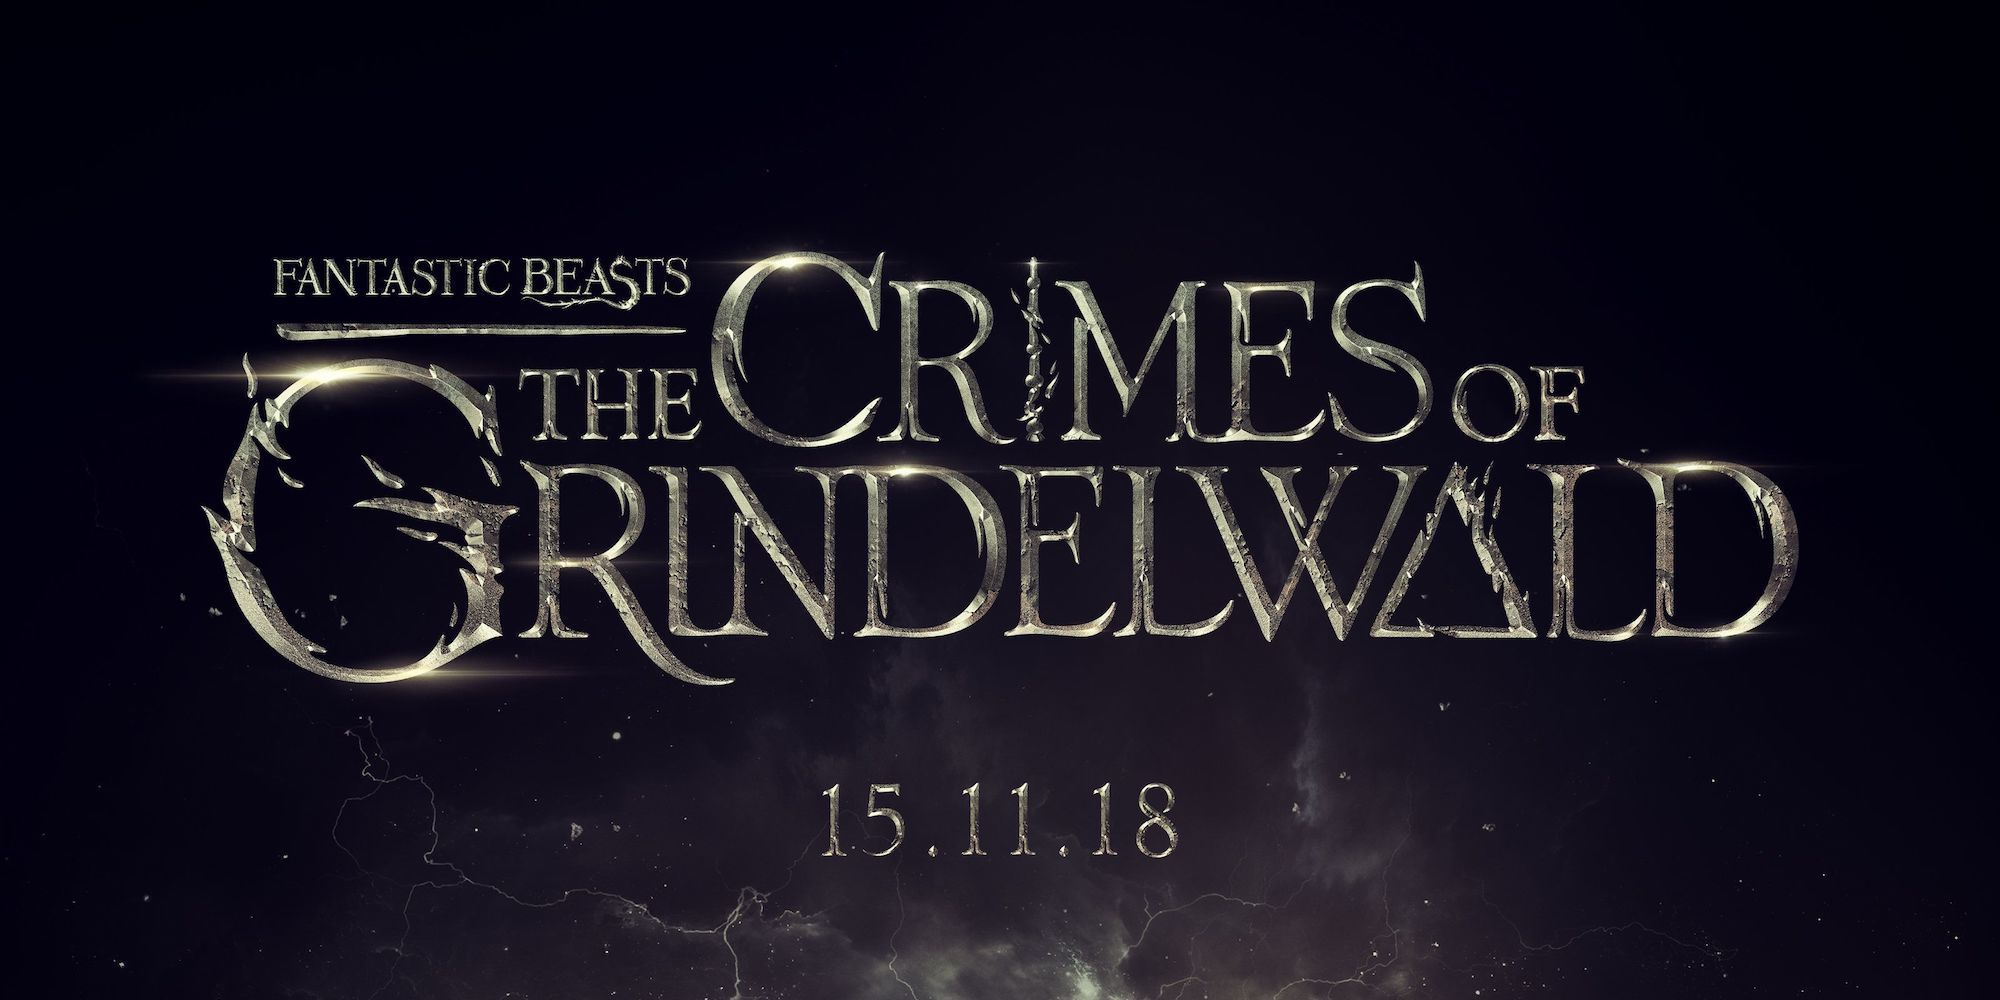 Imagini pentru fantastic beasts and where to find them 2